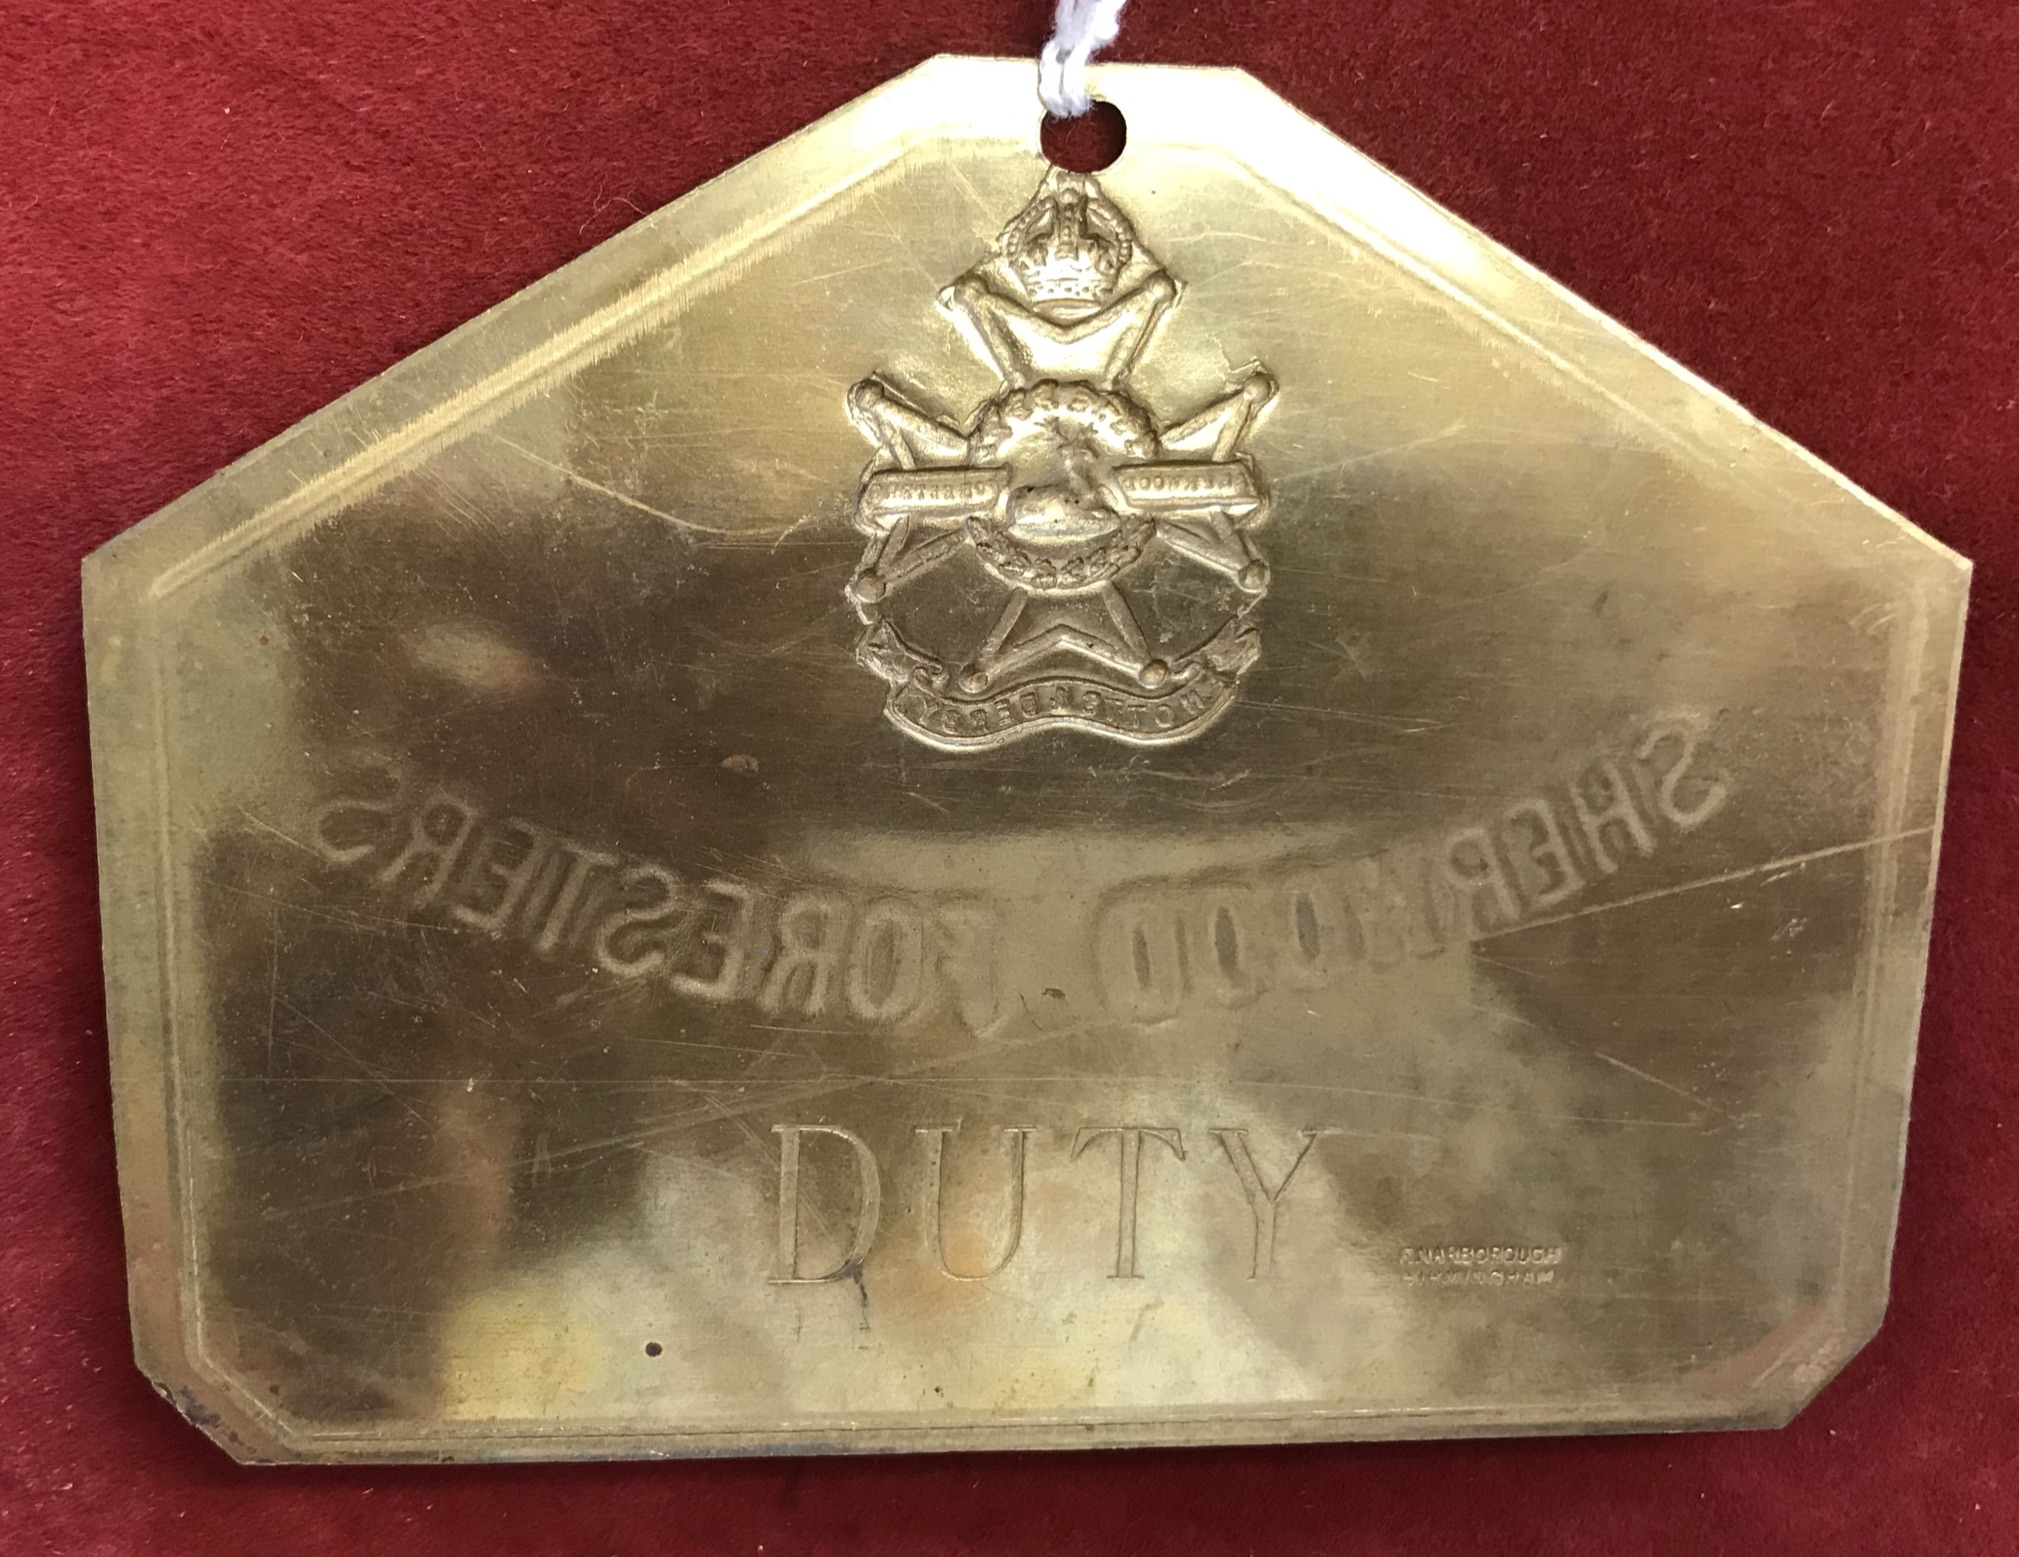 Sherwood Foresters (Nott's & Derby) Regiment WWI Brass 'Duty' Bed Plate, made by E. Narborough, - Image 2 of 2